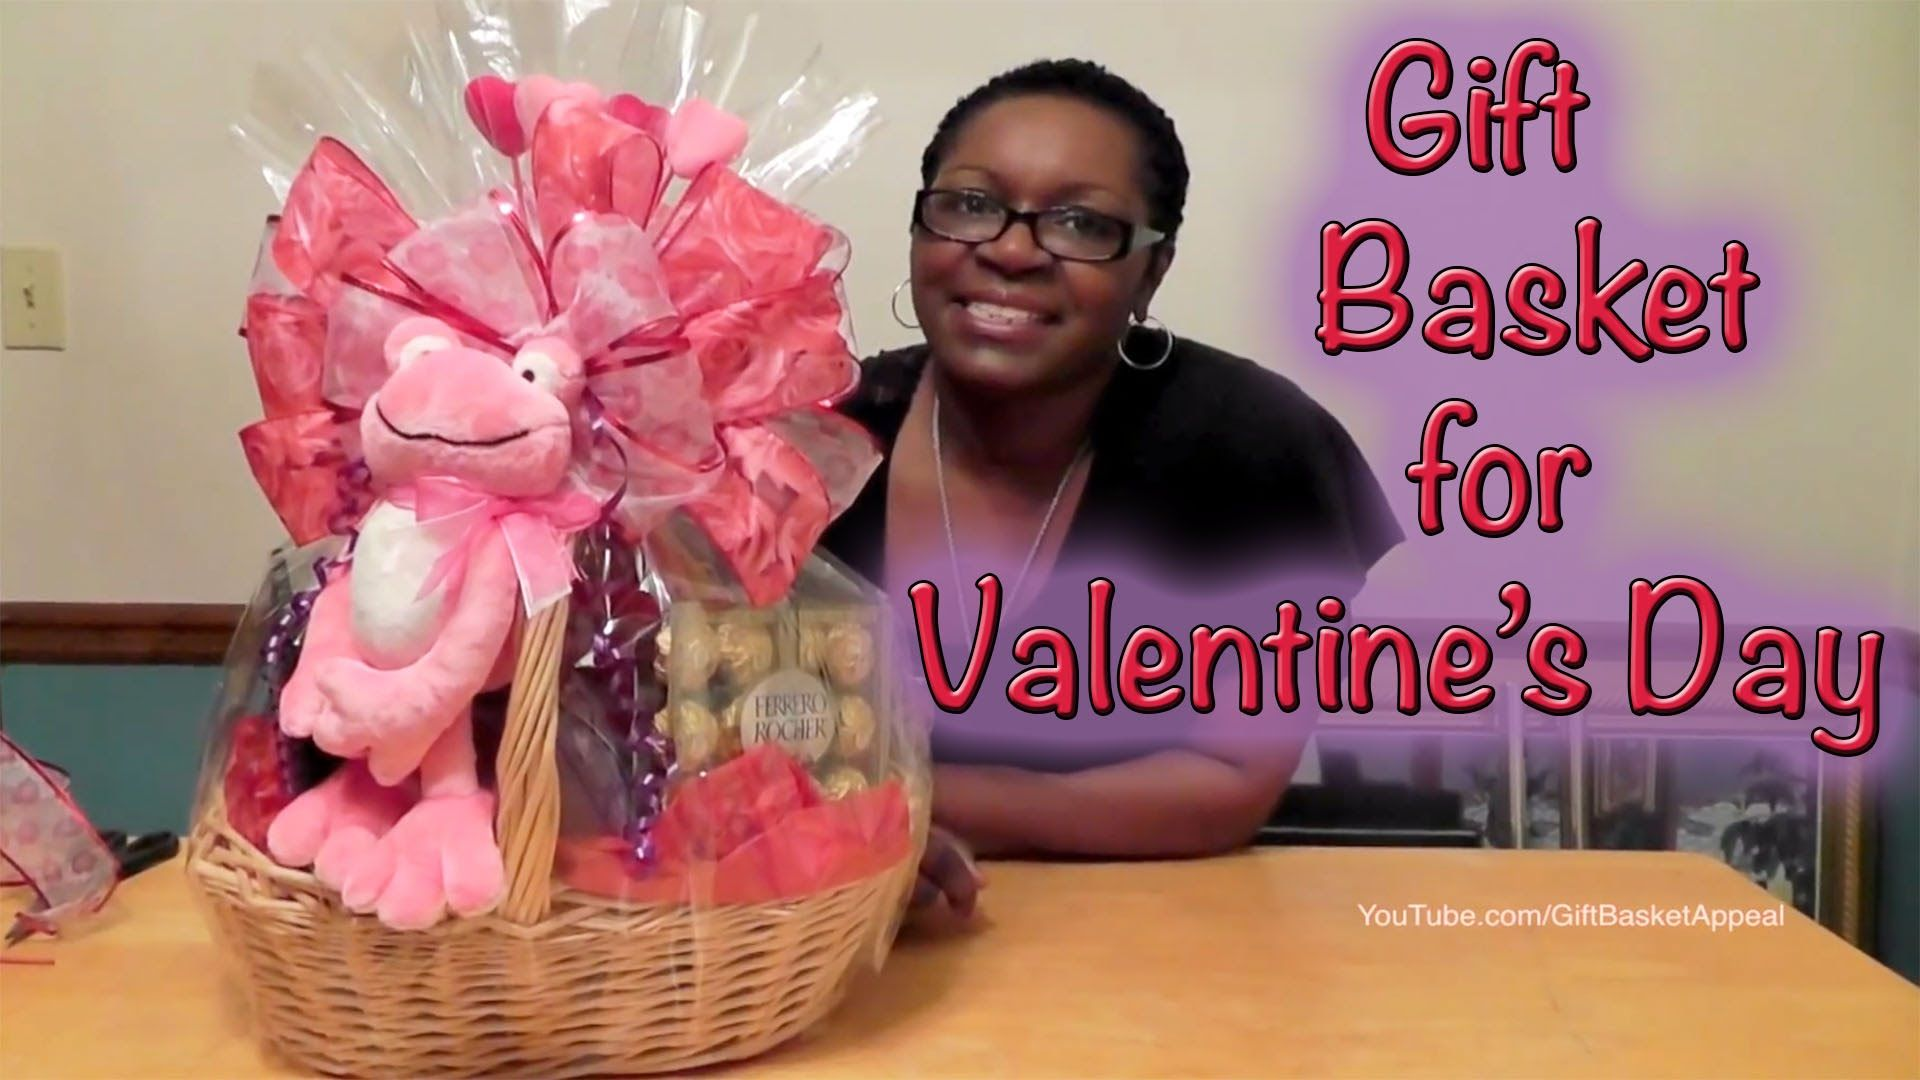 Gift Basket Instructions How To Make A Valentine S Day Gift Basket G Tutorial Diy Valentine S Day Gift Baskets Valentine Baskets Valentine S Day Diy